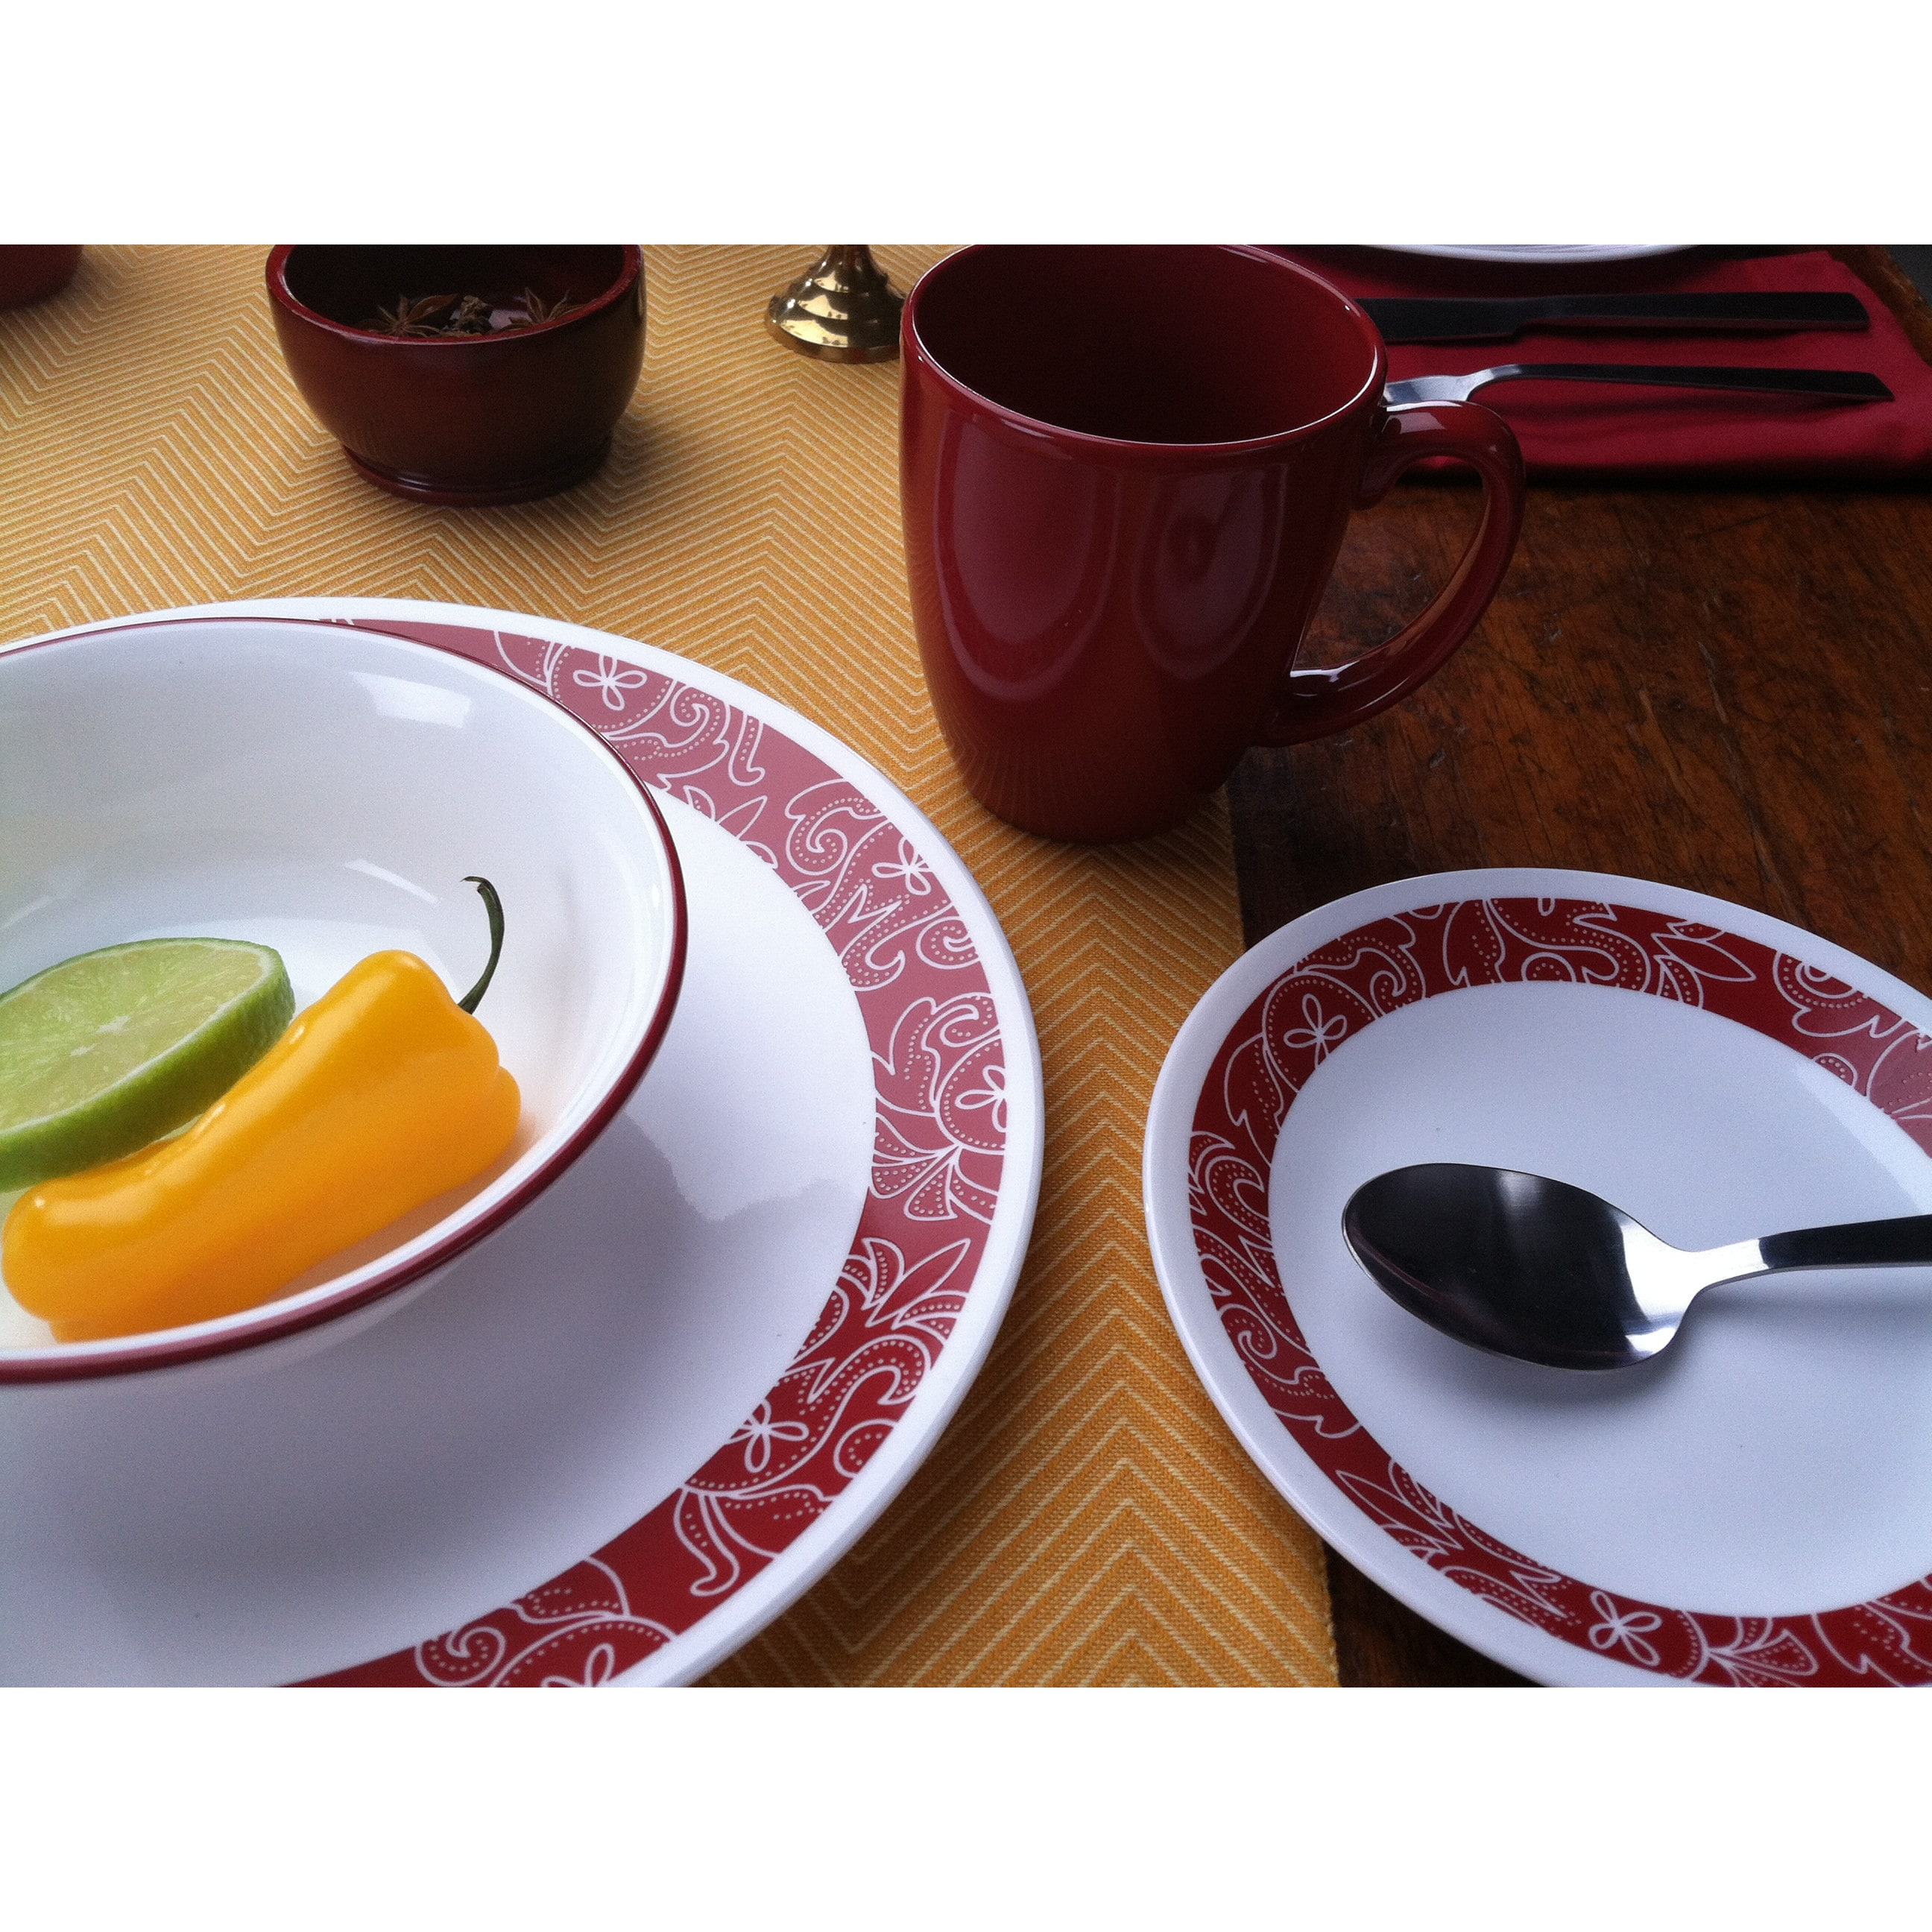 Corelle Livingware Bandhani 16-piece Chip-Resistant Dinnerware Set - Free Shipping Today - Overstock - 18643250  sc 1 st  Overstock.com & Corelle Livingware Bandhani 16-piece Chip-Resistant Dinnerware Set ...